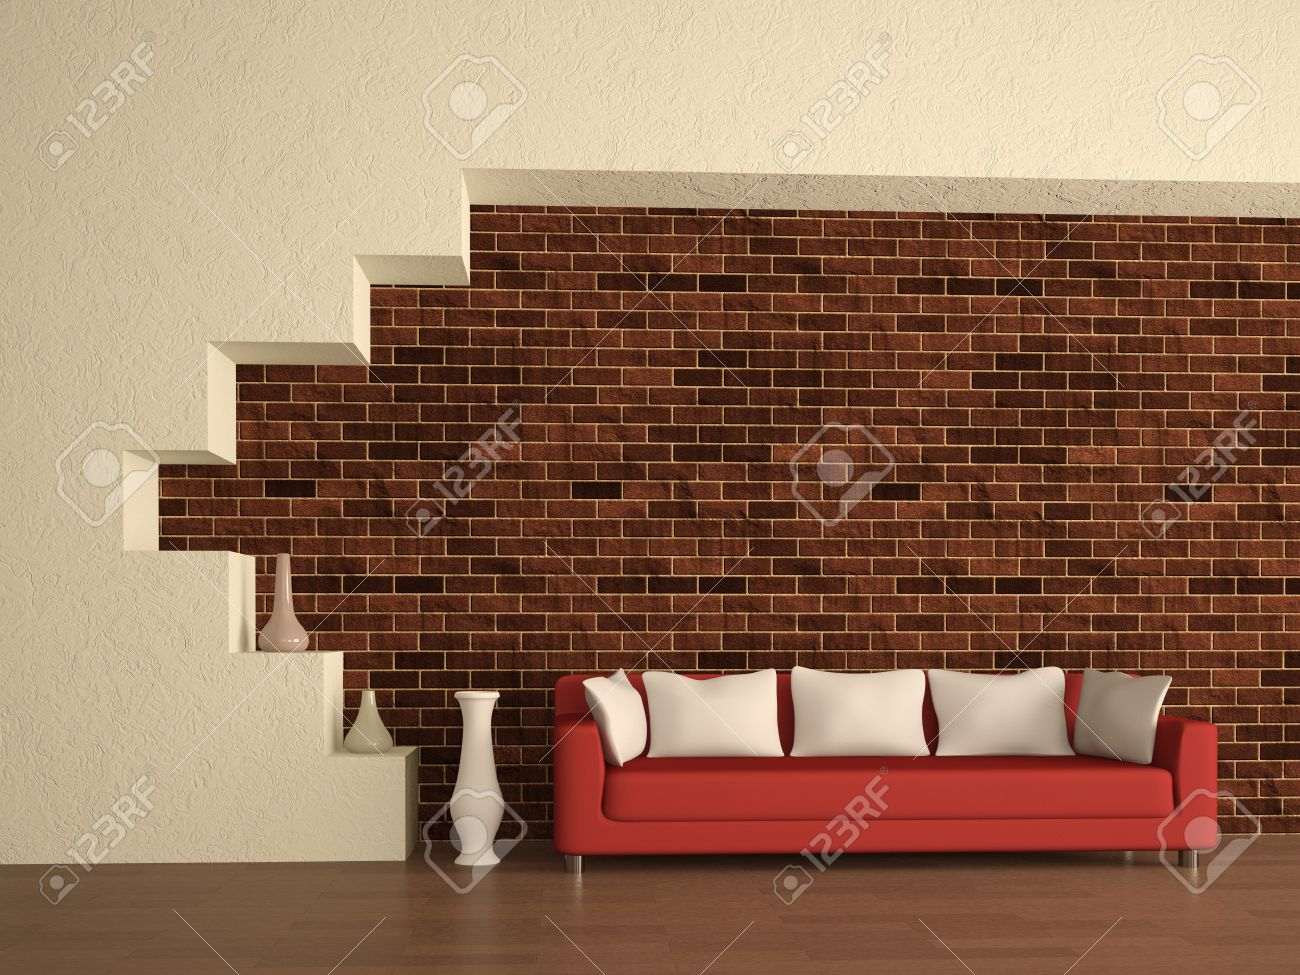 Sofa The Brick Fascinating The Red Sofa Near A Brick Wall Stock Photo Picture And Royalty . Review